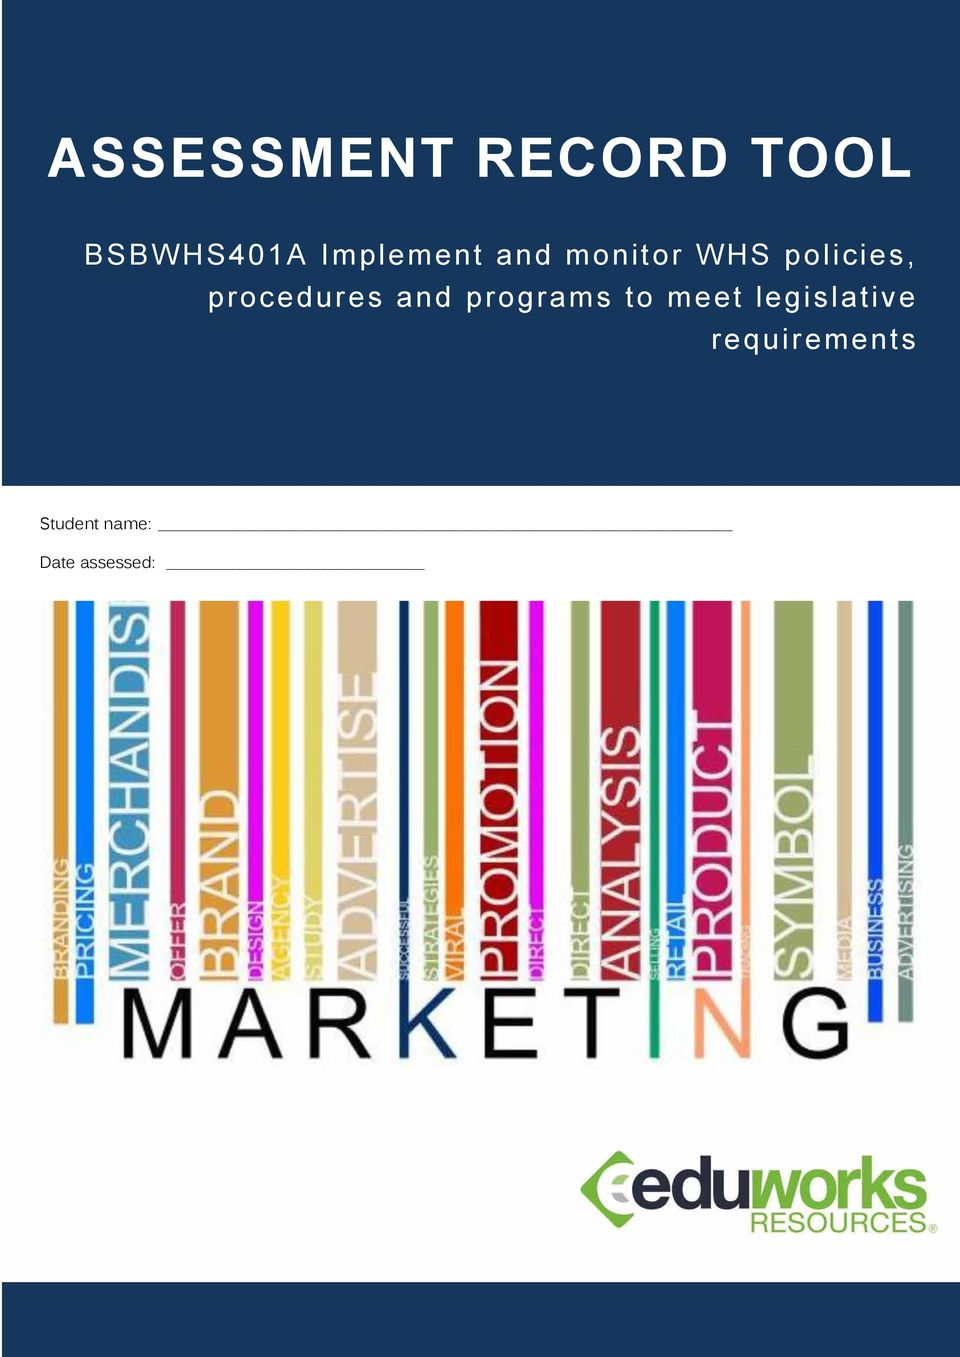 assessment 2 bsbwhs401a implement and monitor Assessment pack – bsbwhs401a implement and monitor whs policies, procedures and programs to meet legislative requirements mammar-momma assessment 4 – case study 3.